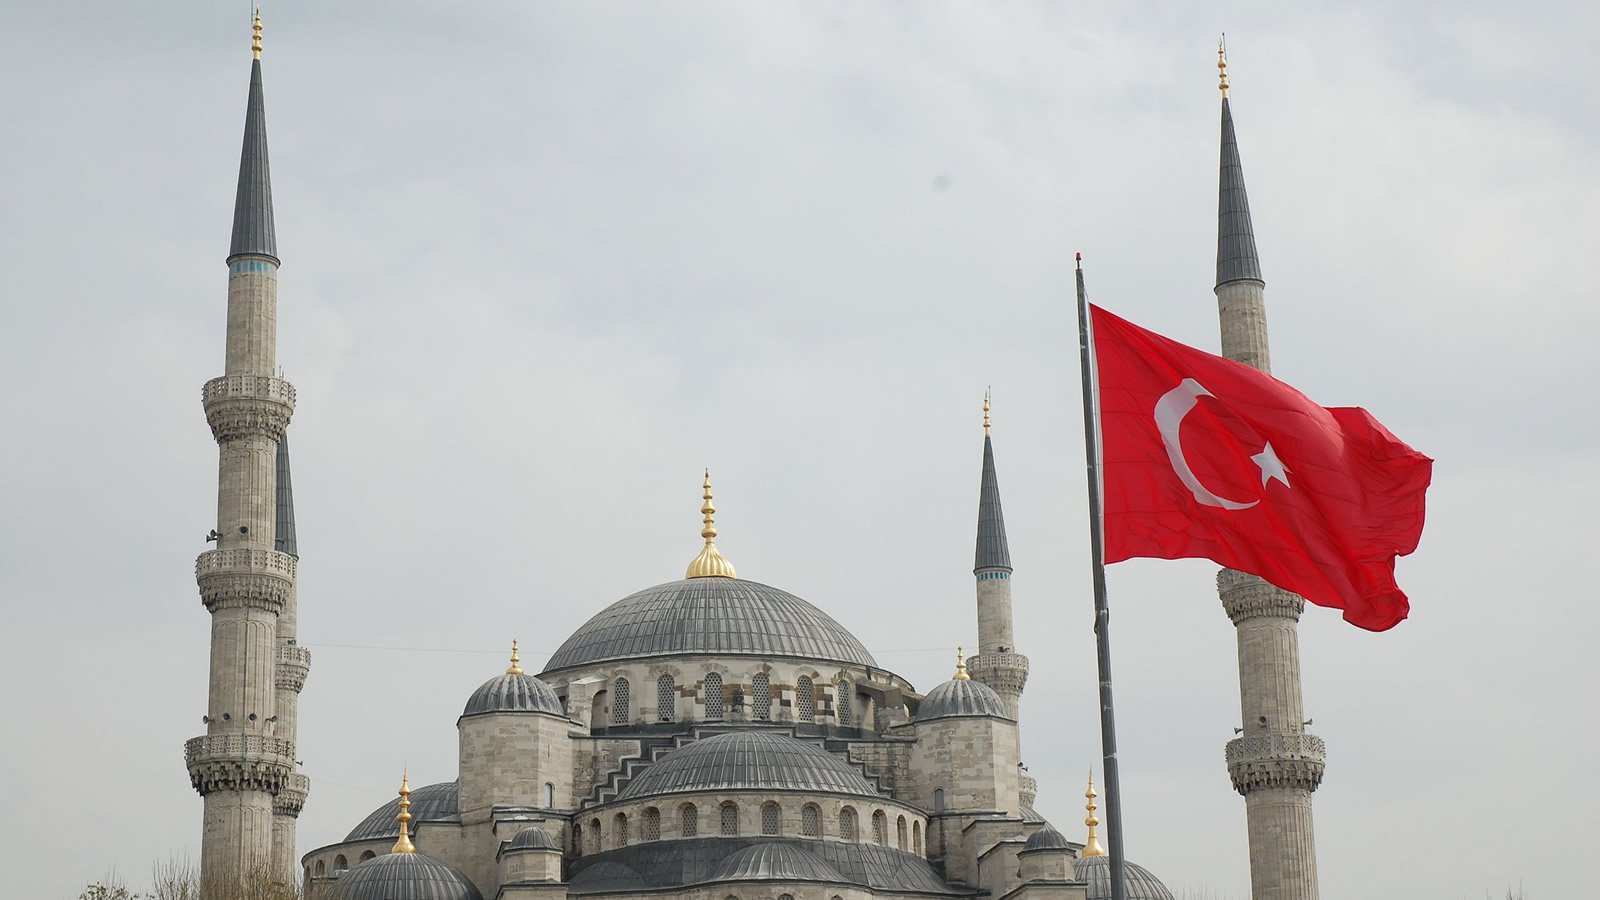 A Turkish flag outside Hagia Sophia.